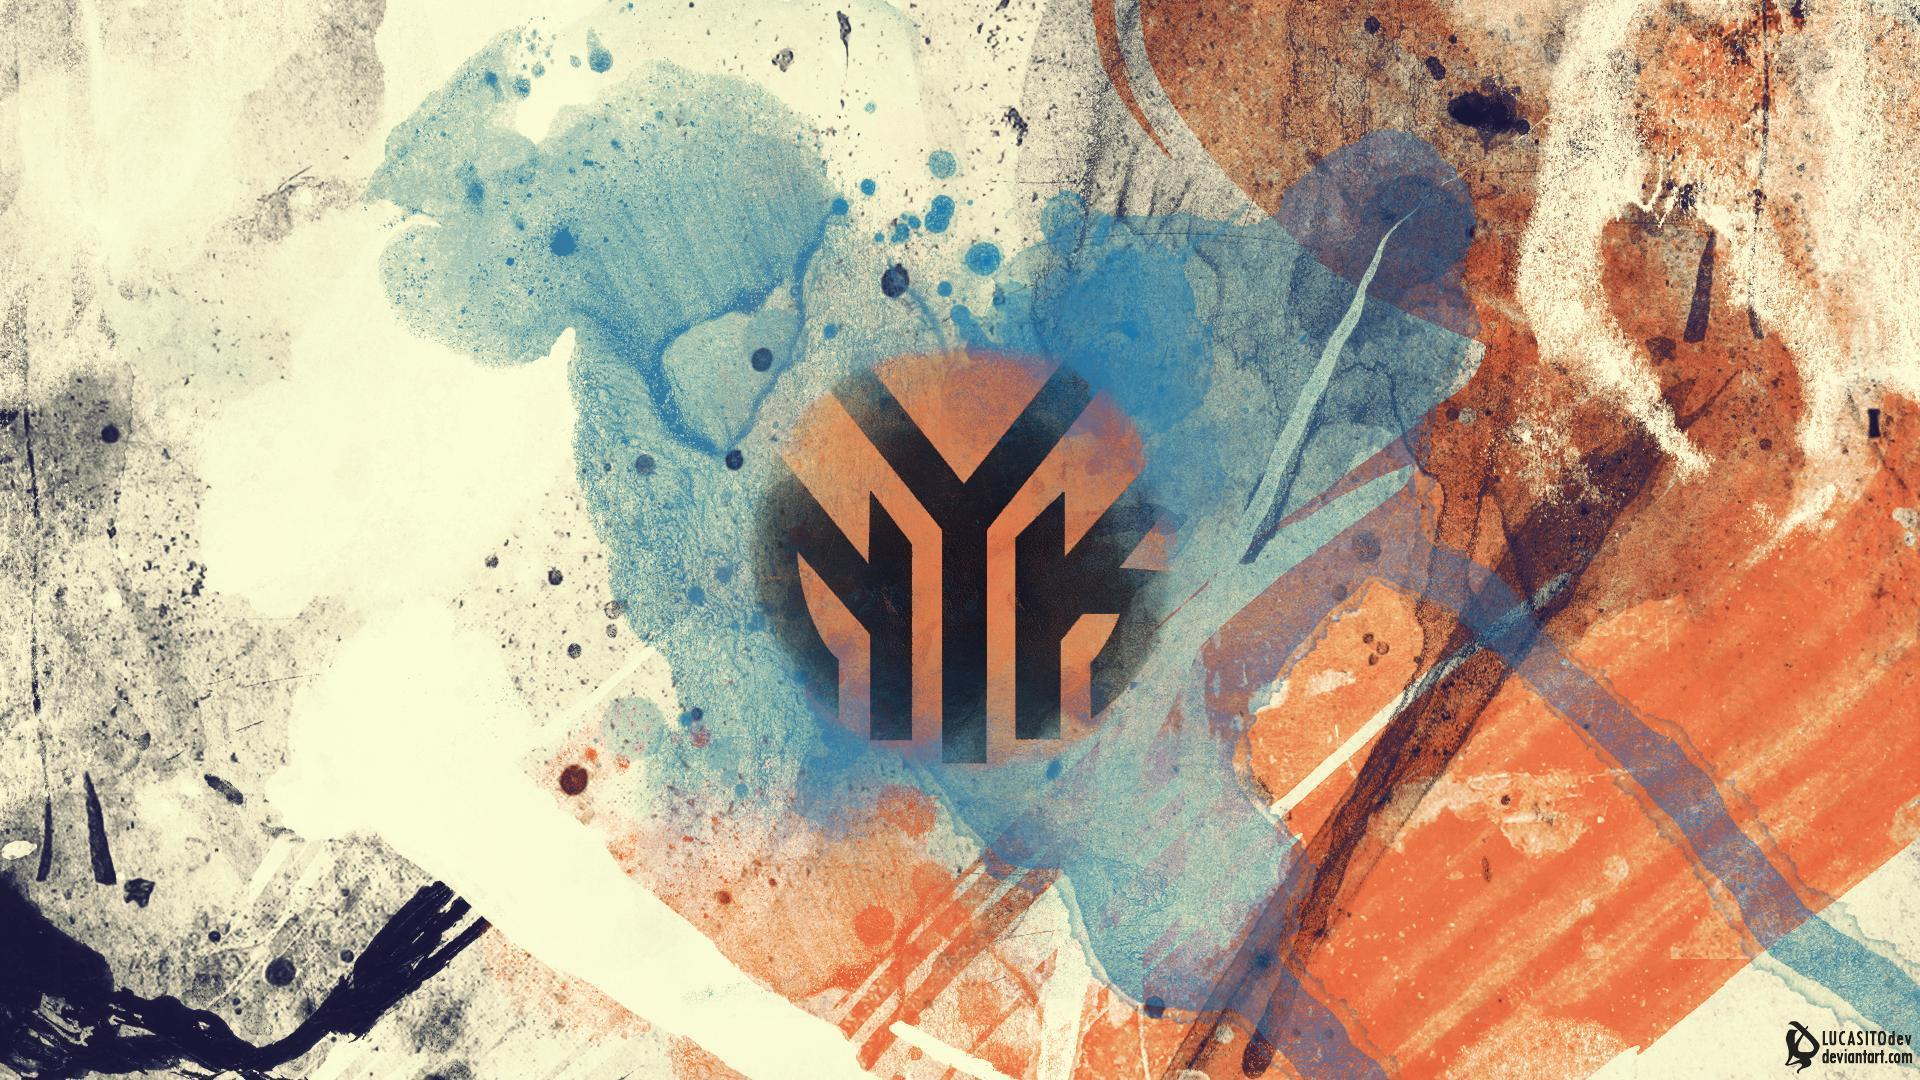 New York Knicks Wallpapers by lucasitodesign